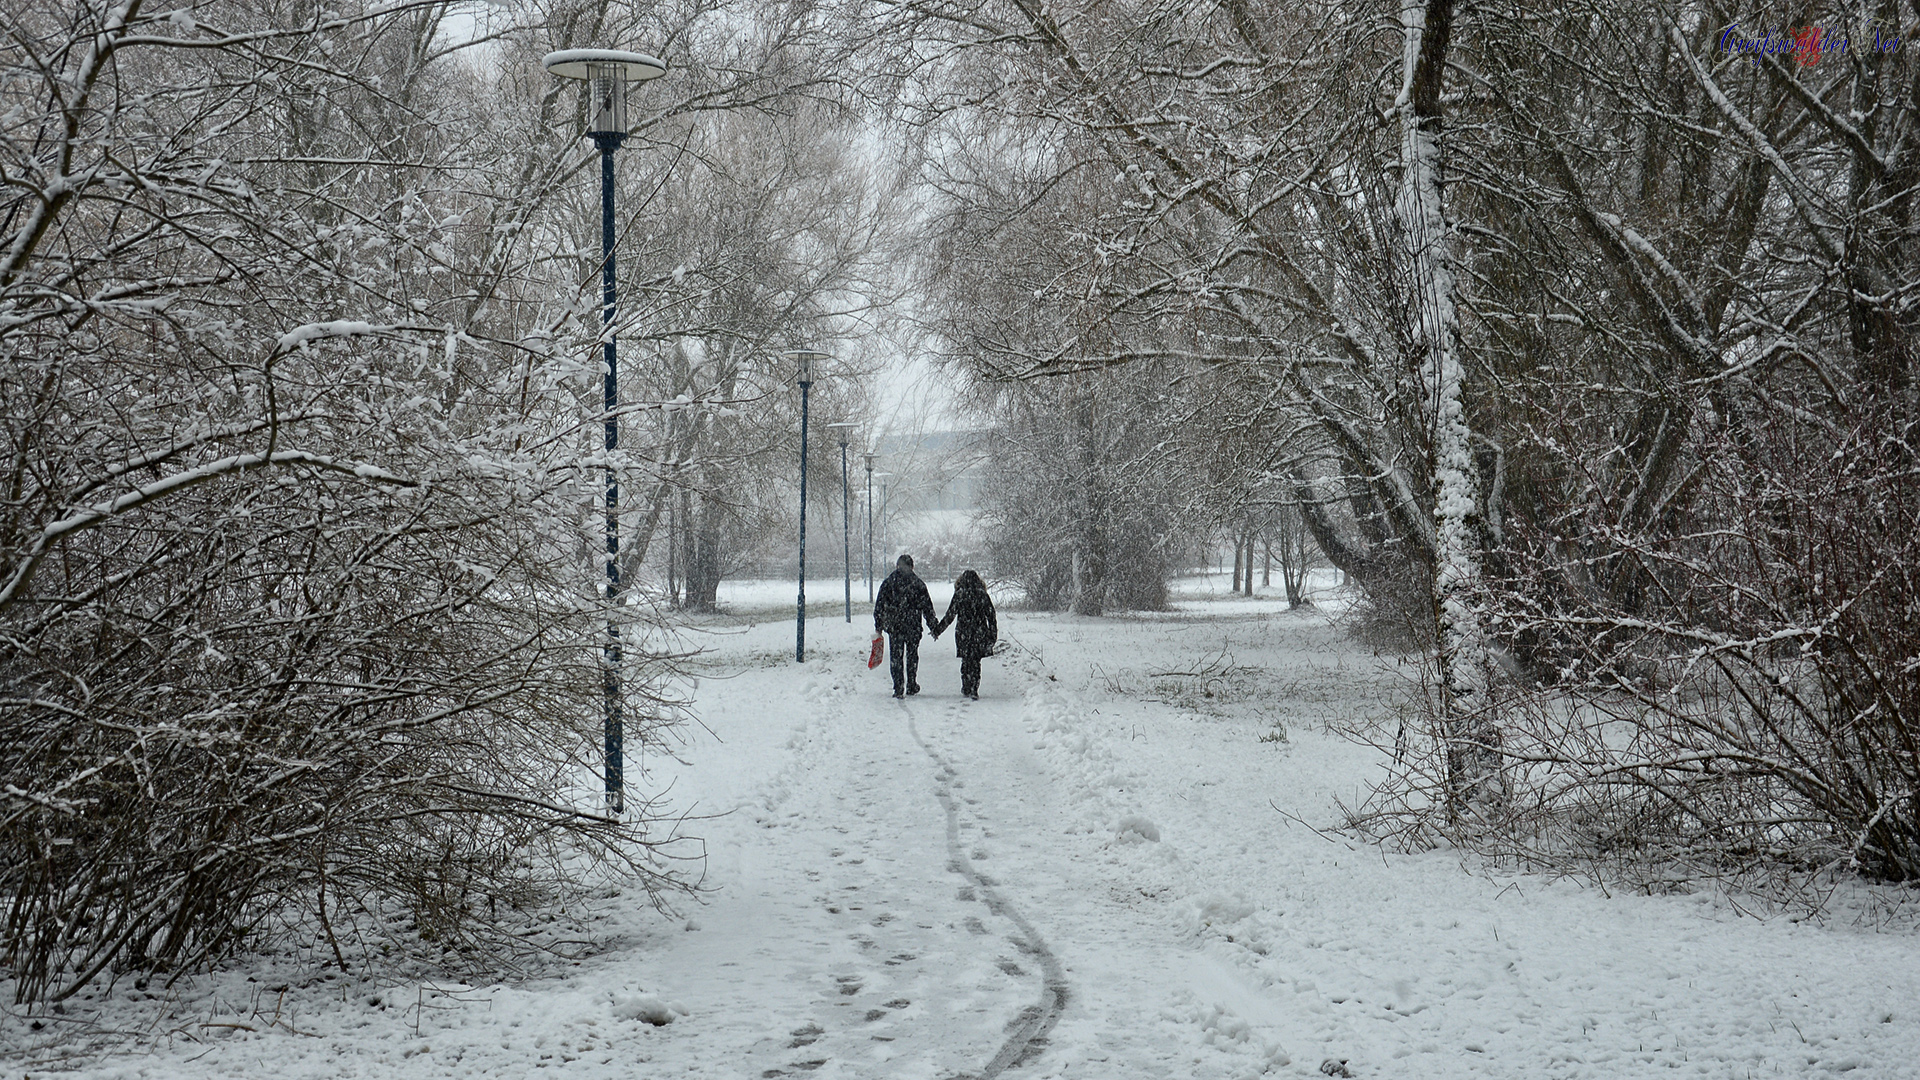 Winter am 31.01.2015, Stadtpark Greifswald